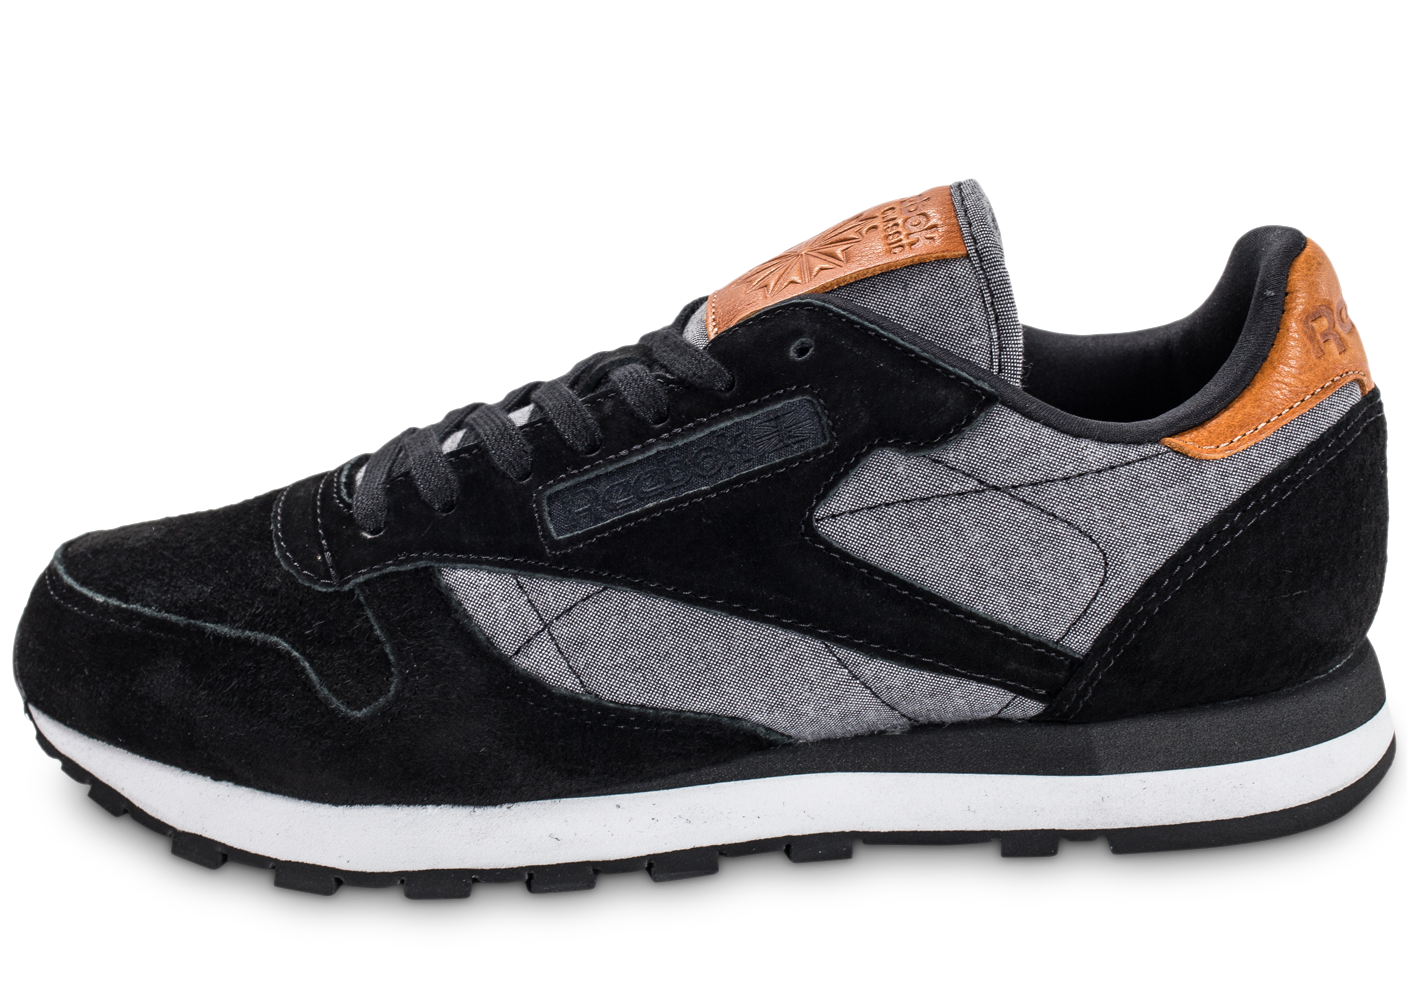 Reebok classic leather chambray noire